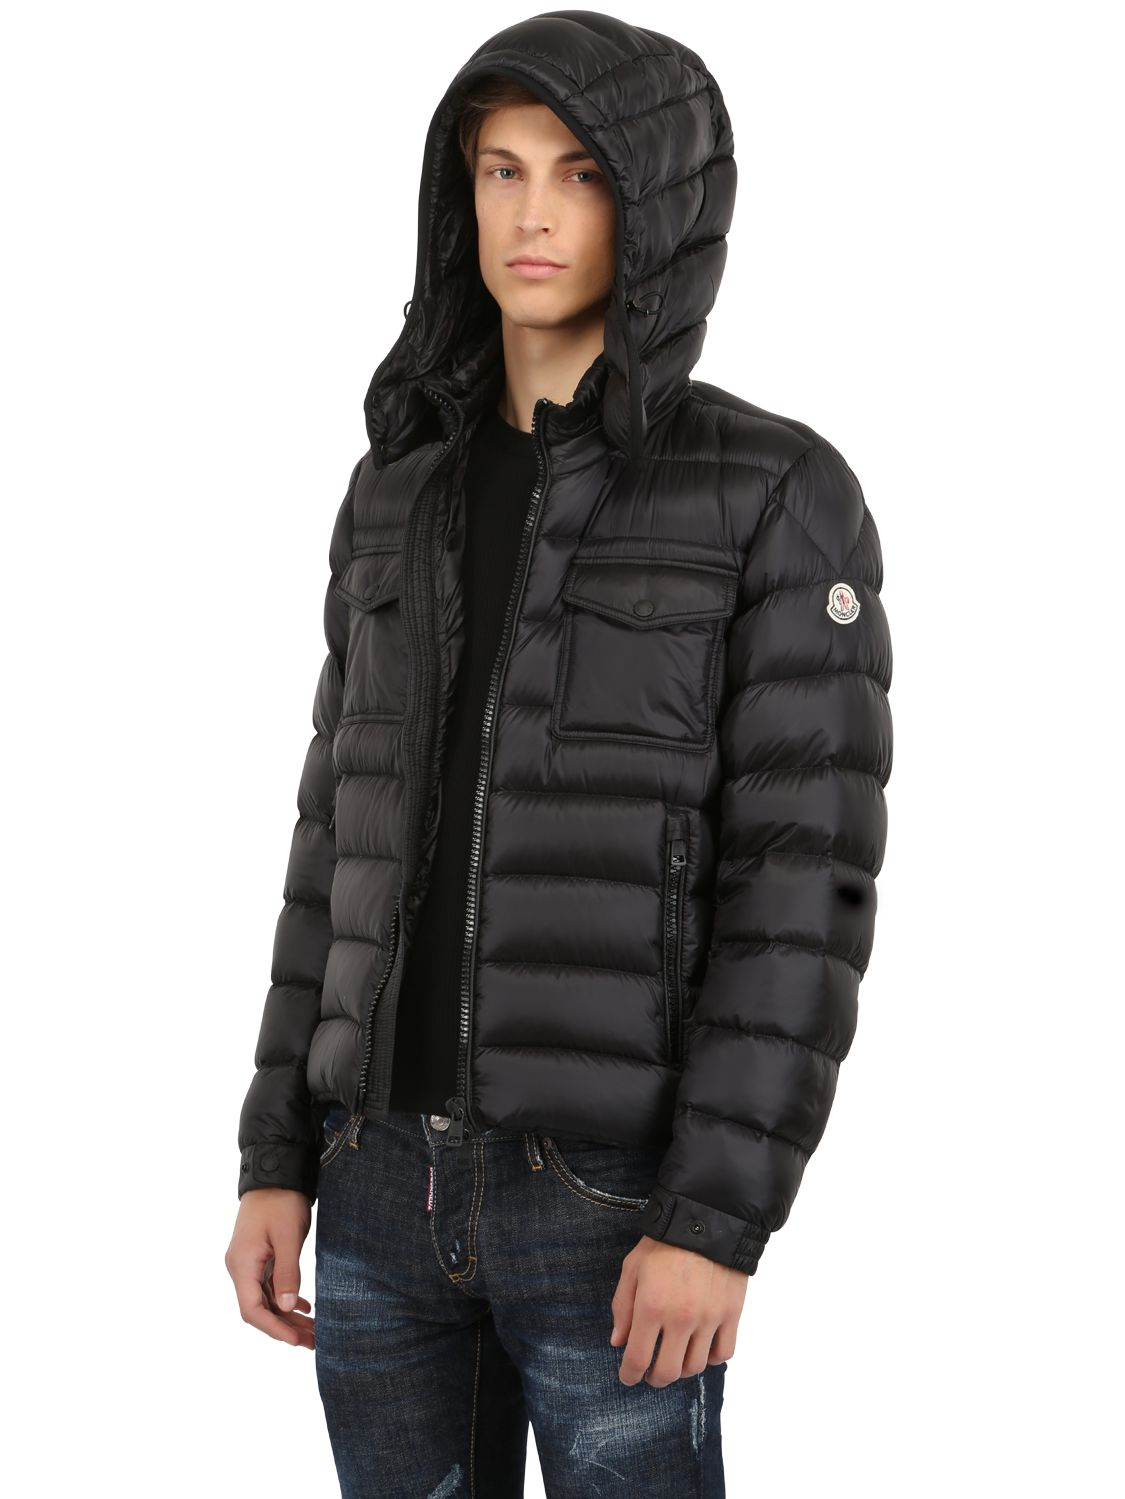 moncler edward nylon down jacket in black for men lyst. Black Bedroom Furniture Sets. Home Design Ideas